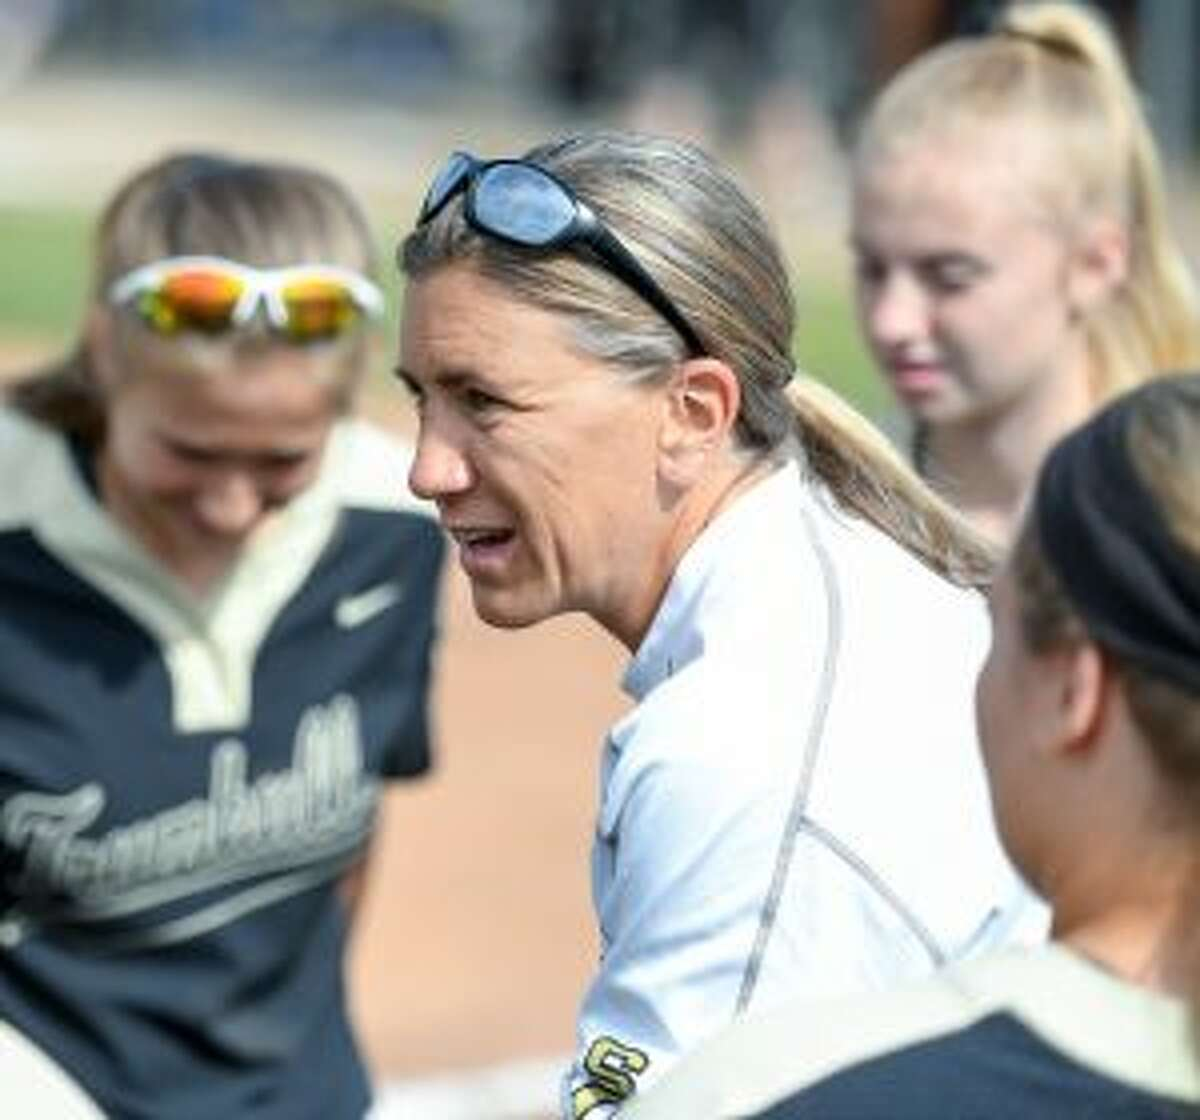 Trumbull head softball coach Jacqui Sheftz was feted by the CHSCA. - David G. Whitham photo